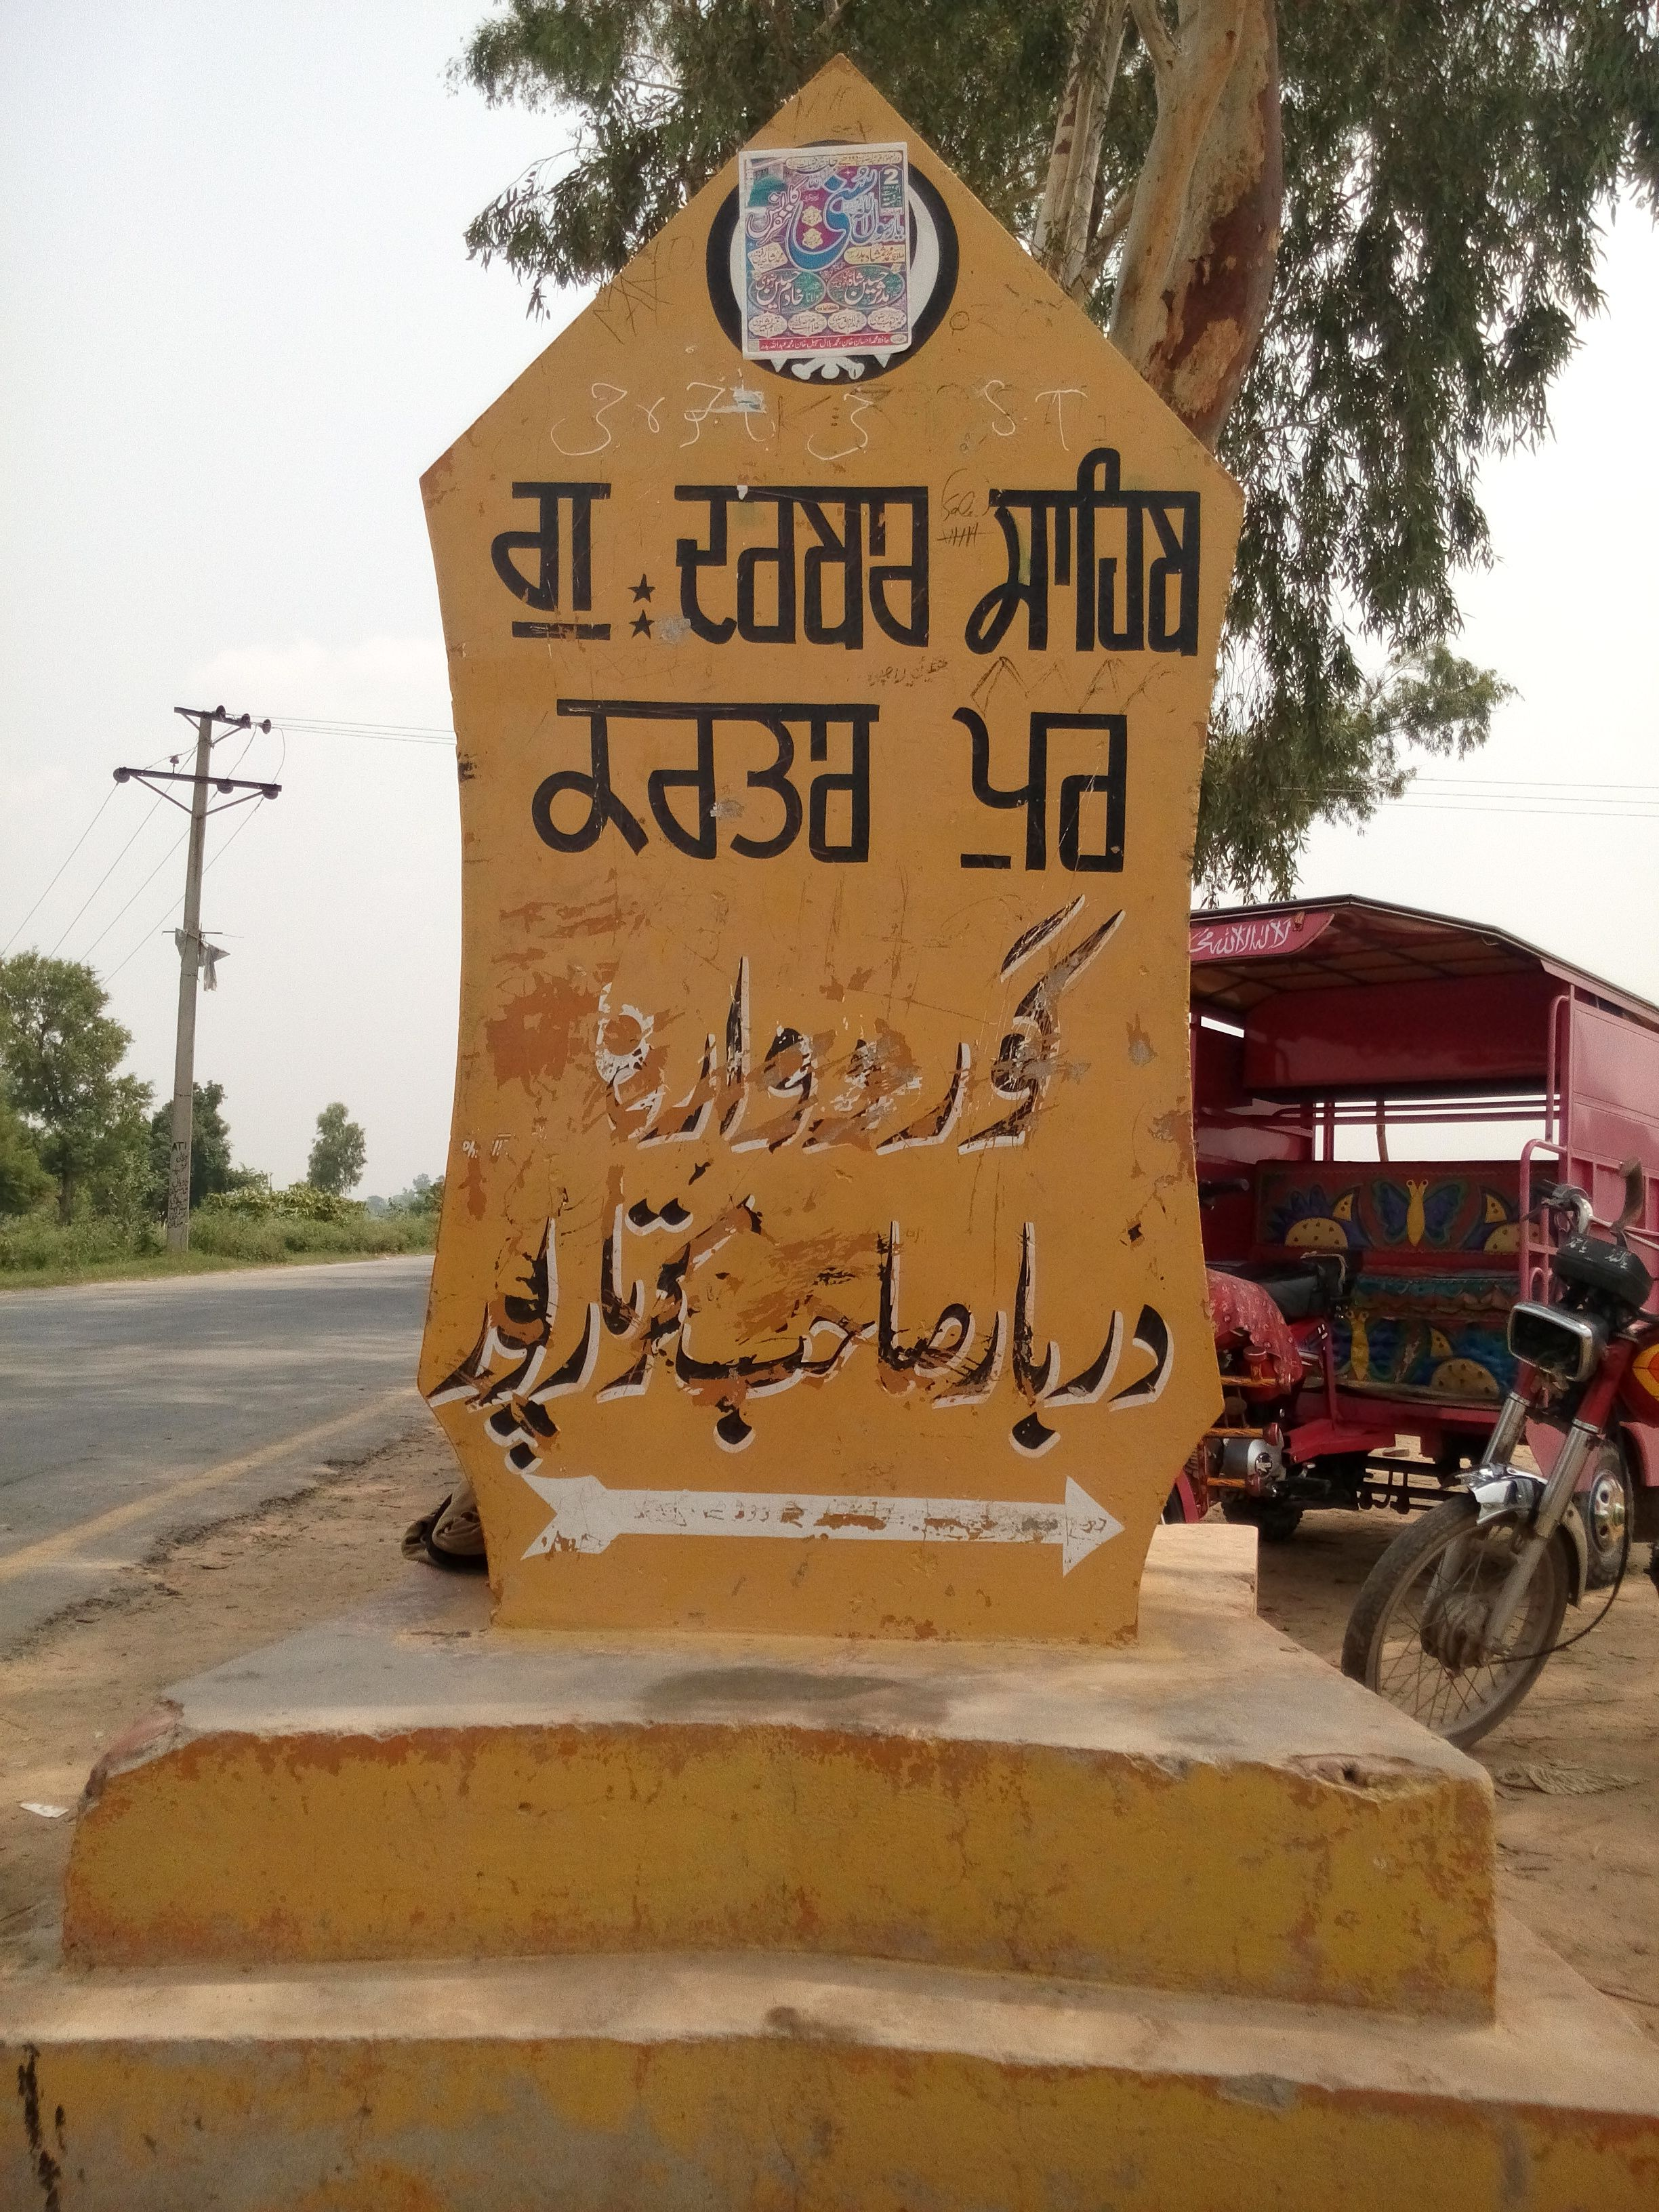 The directional milepost on Narowal-Shakargarh Road indicating the road leading to Gurdwara Kartarpur Sahib